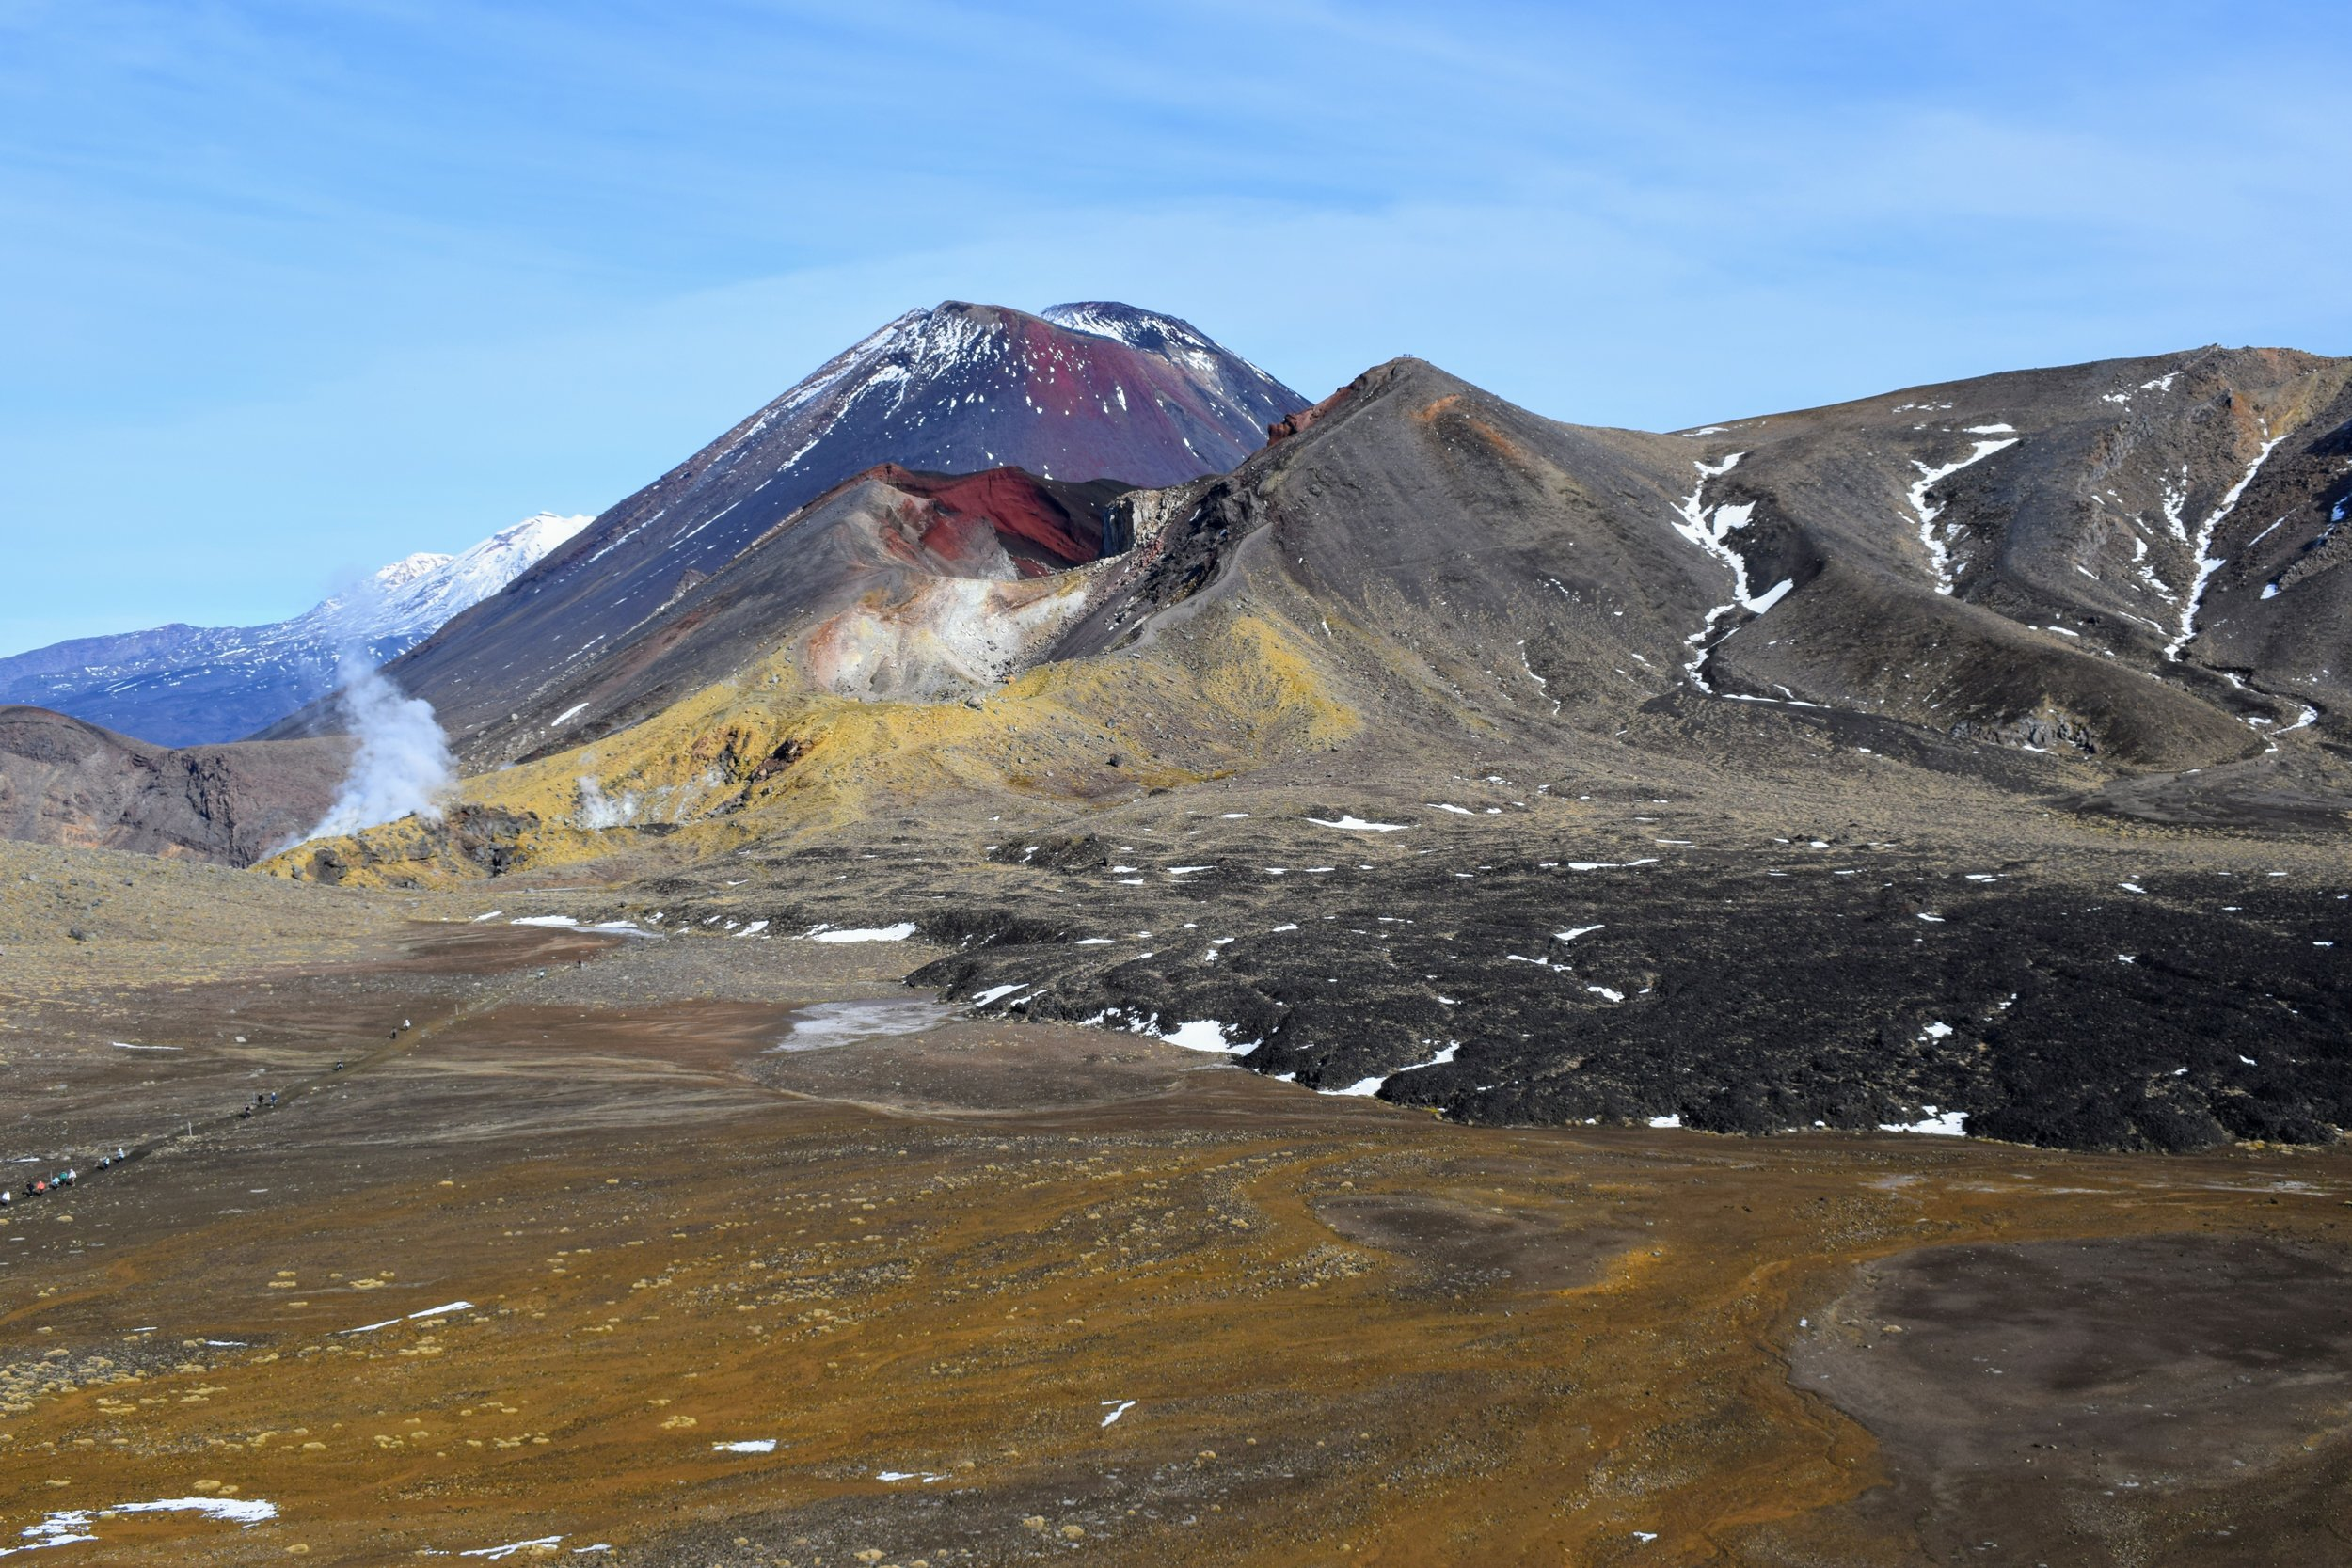 And one more photo zoomed out a little, so you can see that neat old lava flow on the right.